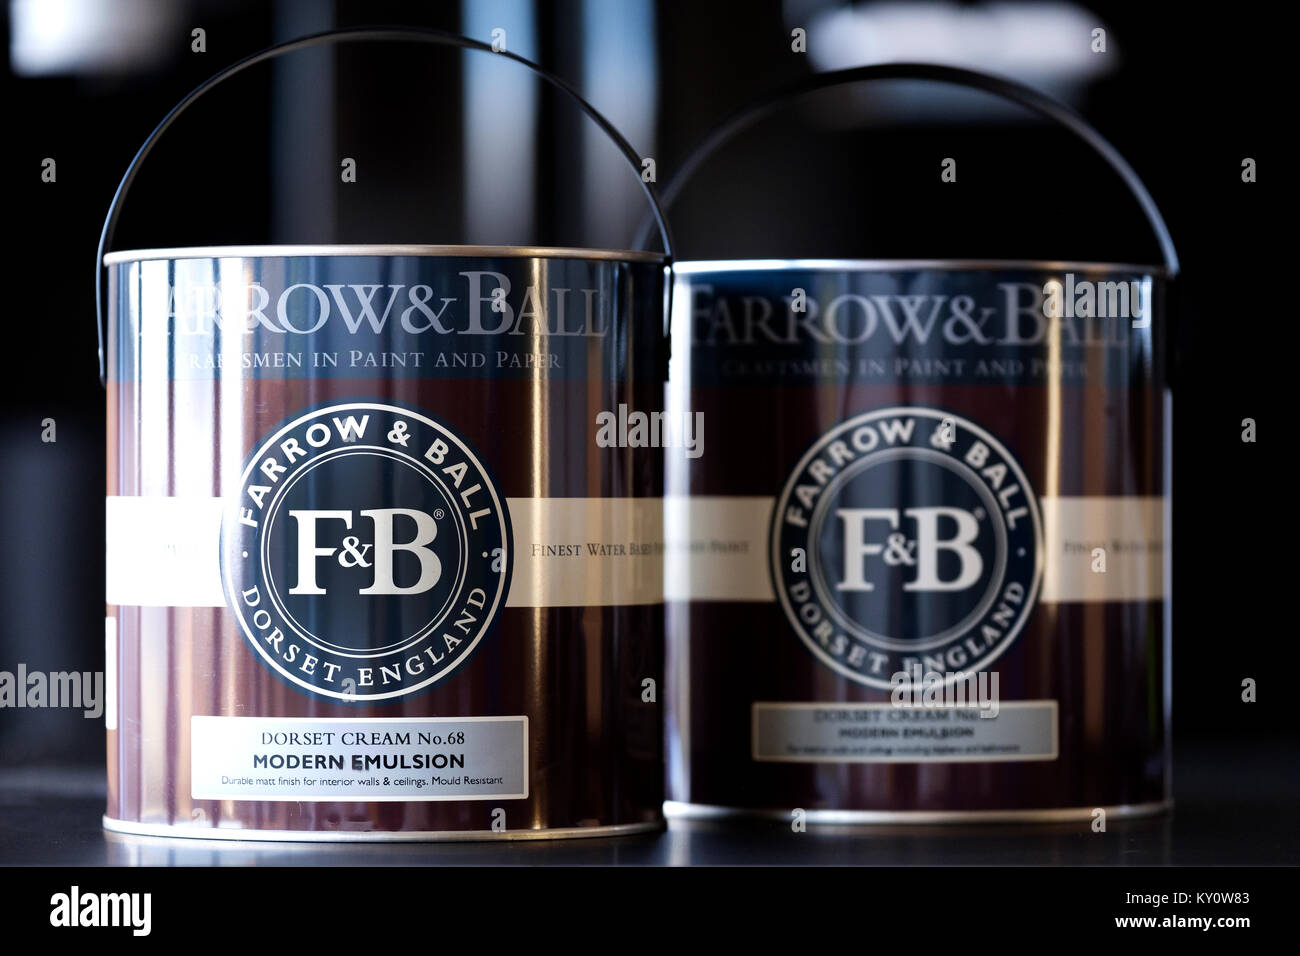 Two new unopened tins of Farrow and Ball paint. The tins clearly show the company banding and logo. A high end expensive, - Stock Image